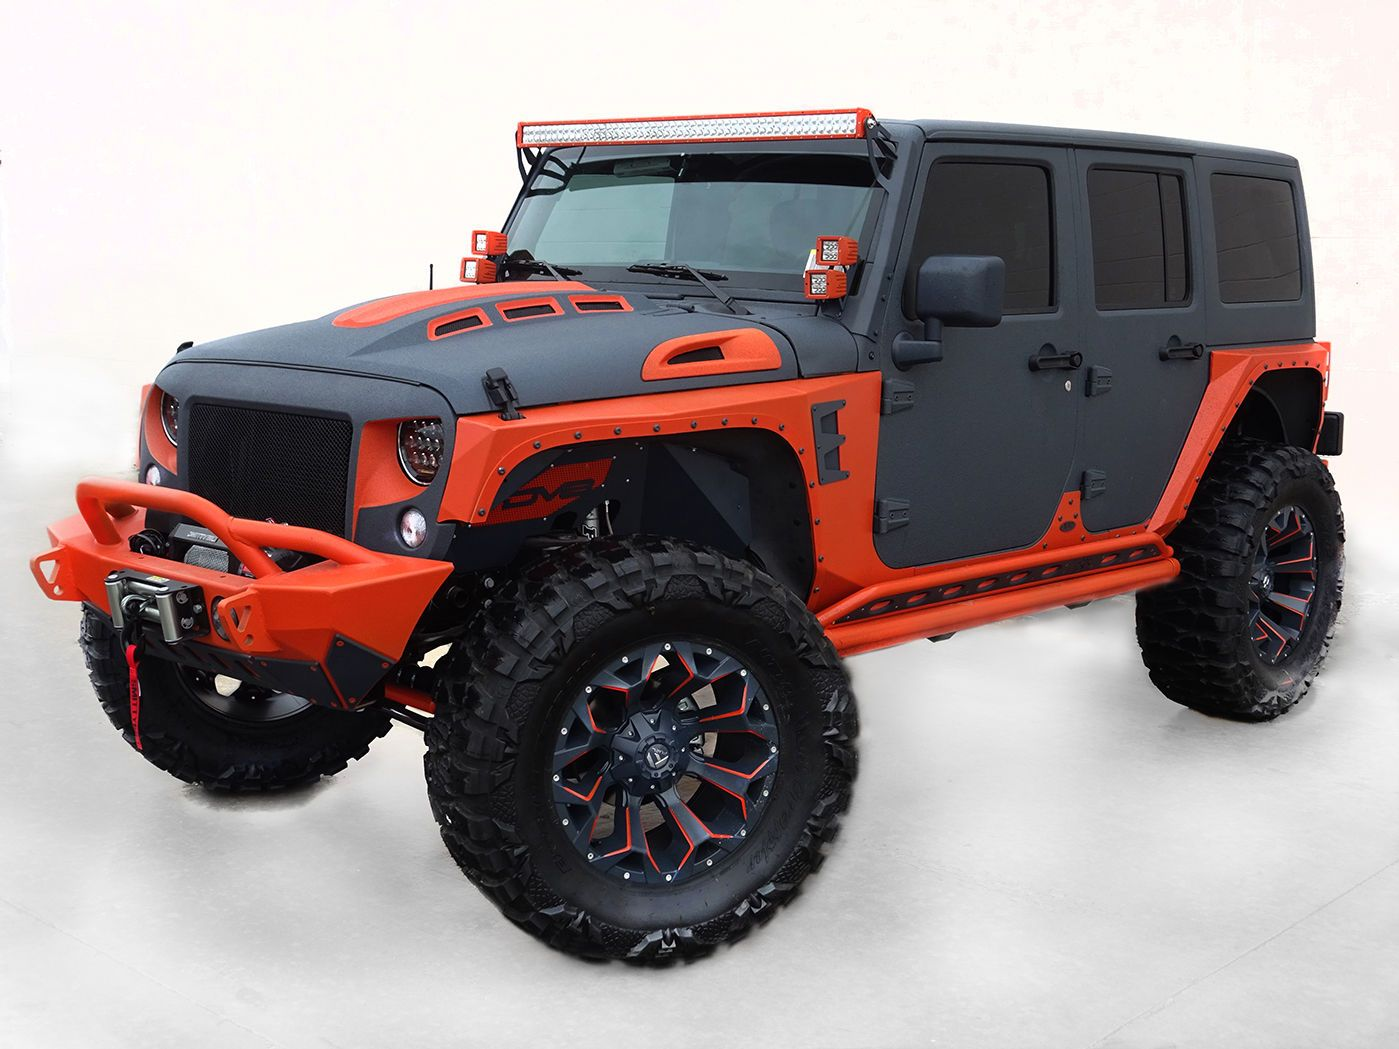 Jeep Wrangler SPORT UNLIMITED STEALTH SERIES in eBay